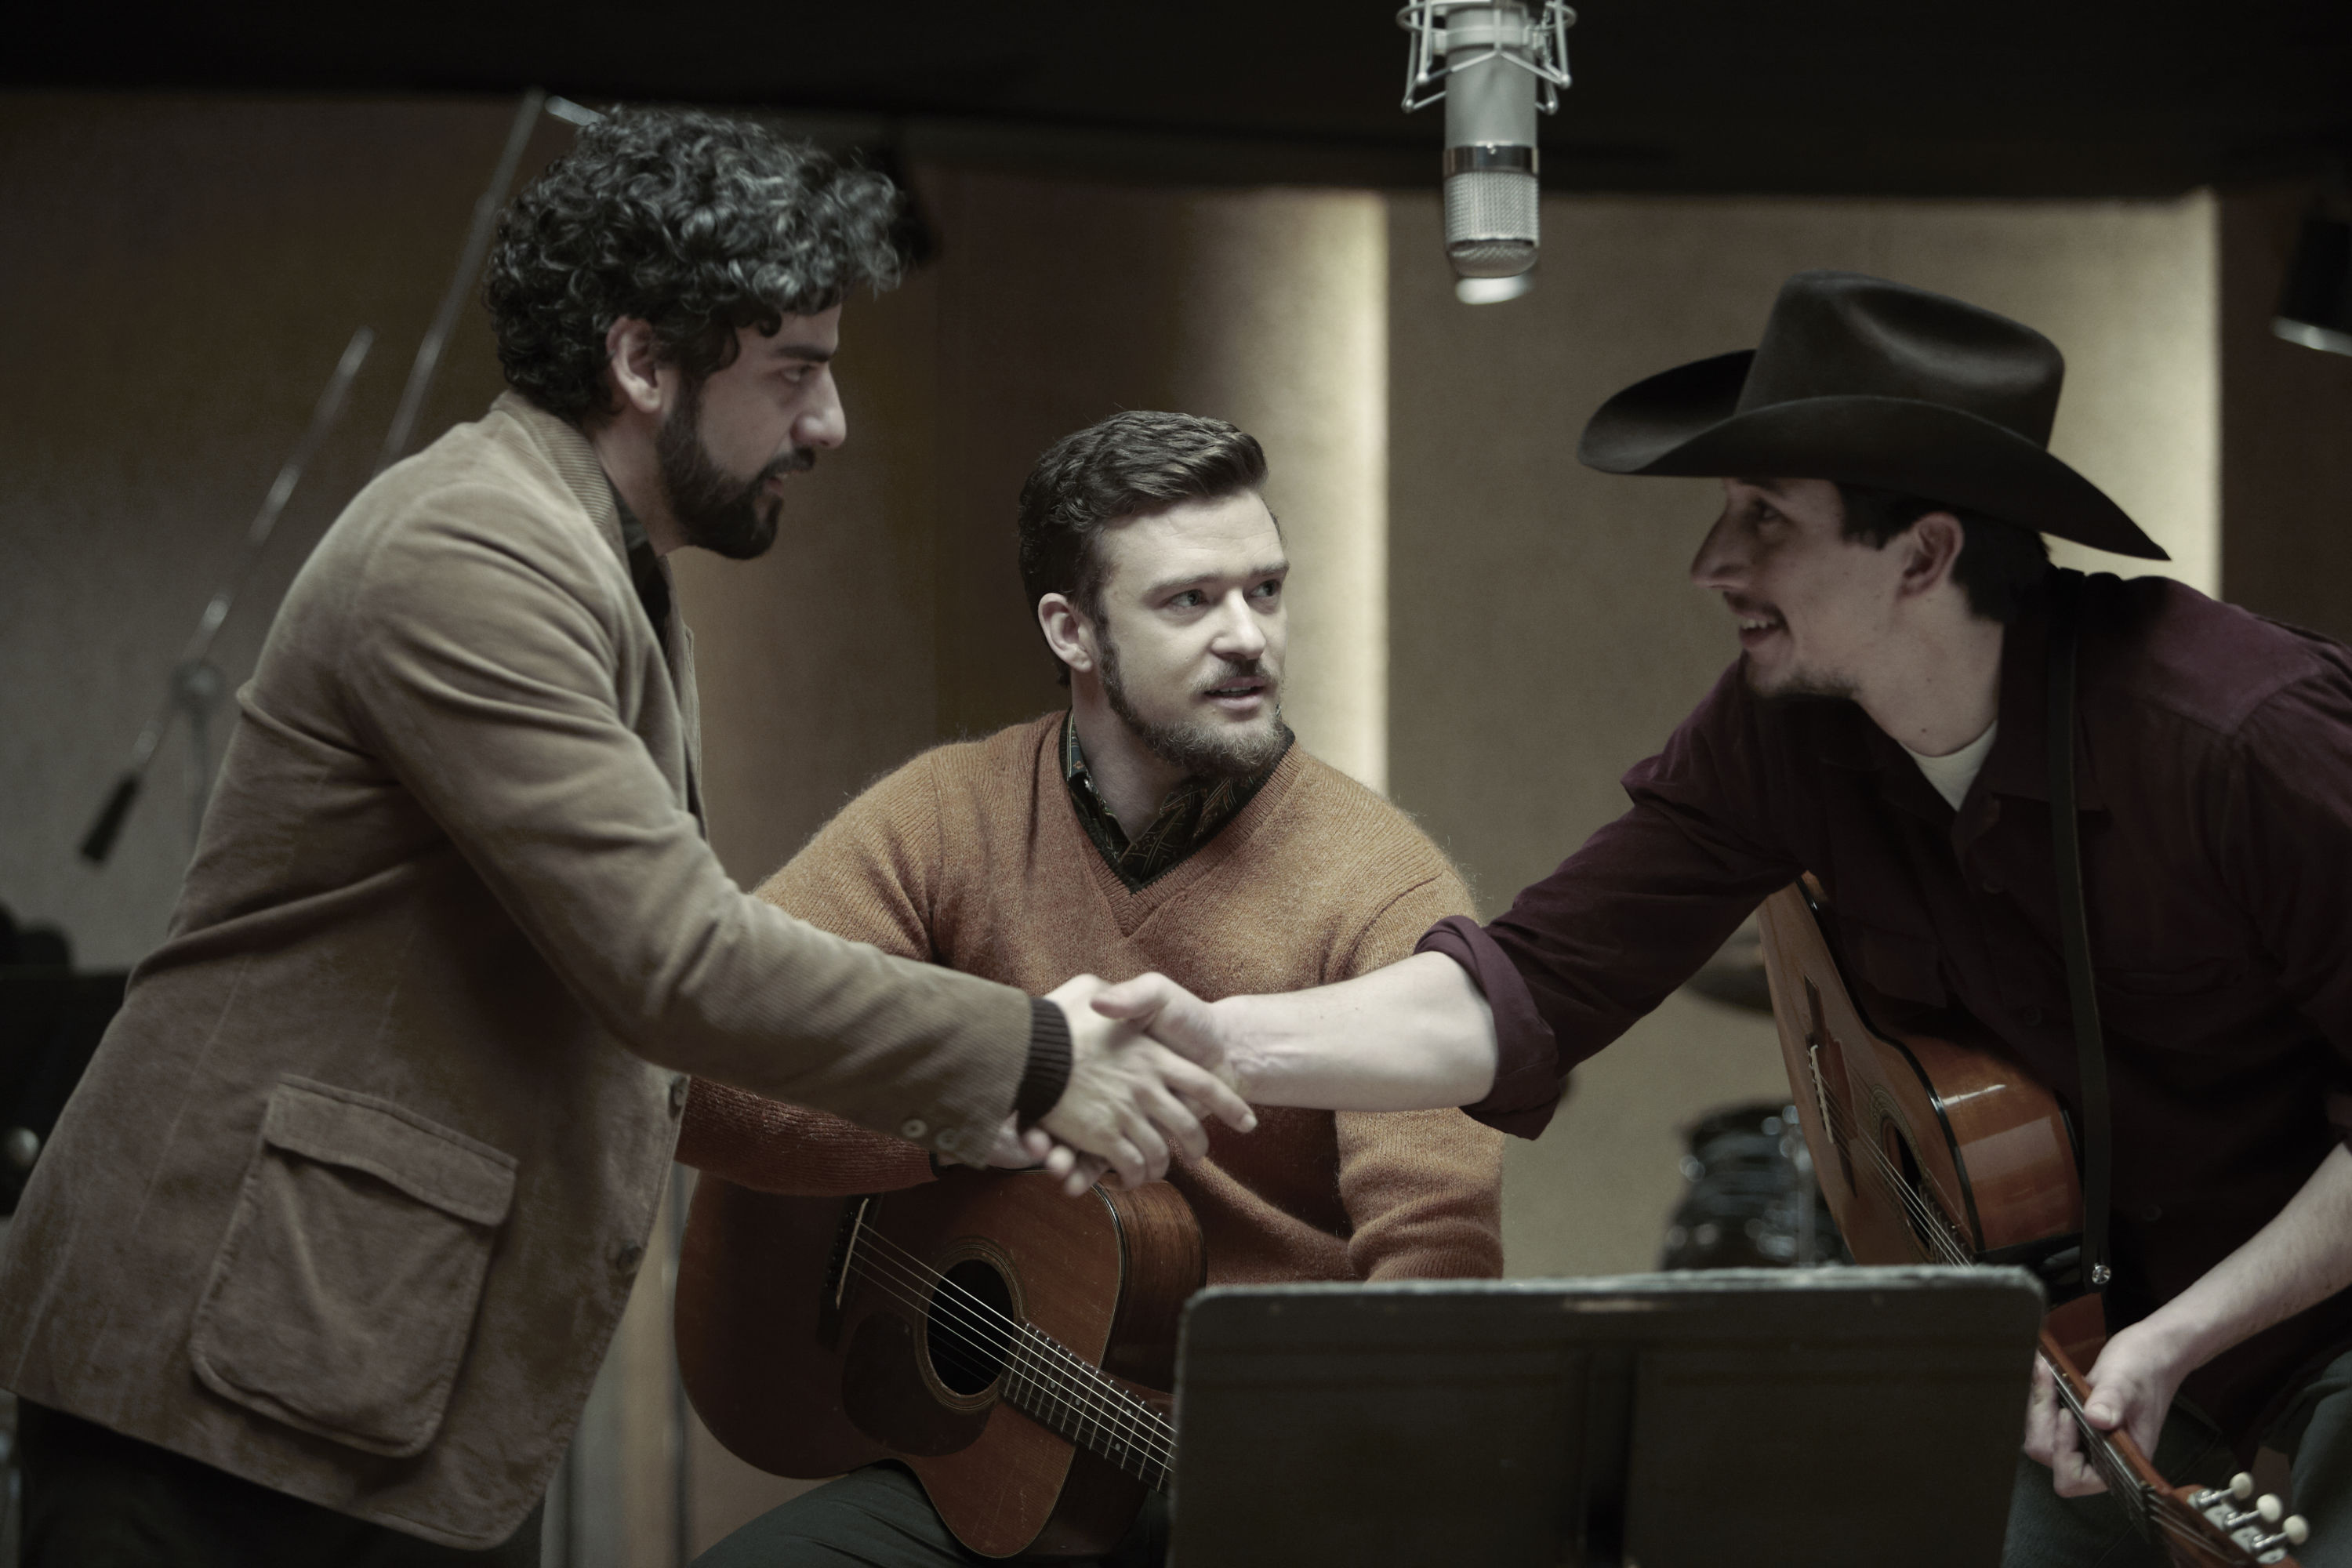 oscar_isaac_justin_timberlake_and_adam_driver_l_r_in_joel_and_ethan_coen_s_inside_llewyn_davis_photo